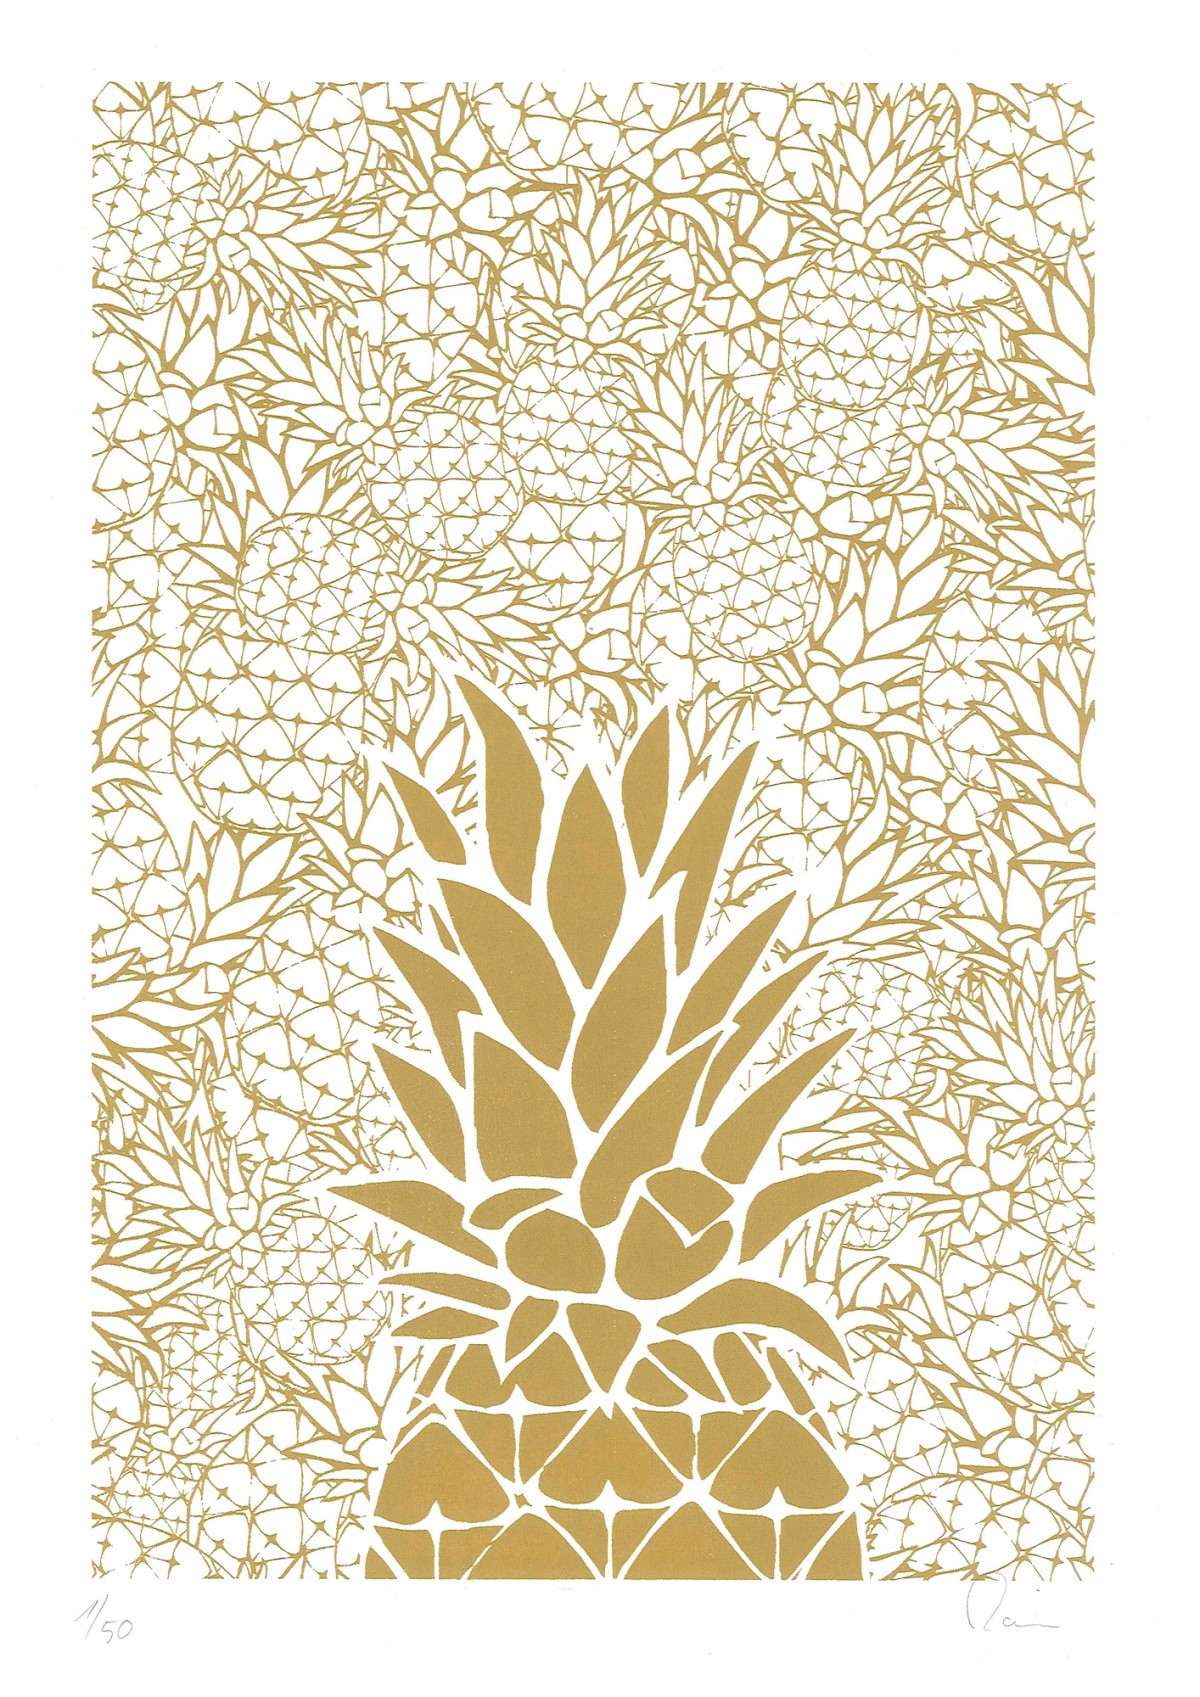 """Pineapple Edition 8"" by Rainer Taepper.  11.69"" x 16.54"" Screenprint.  Ed of 50 S/N.  €39 ($43)"